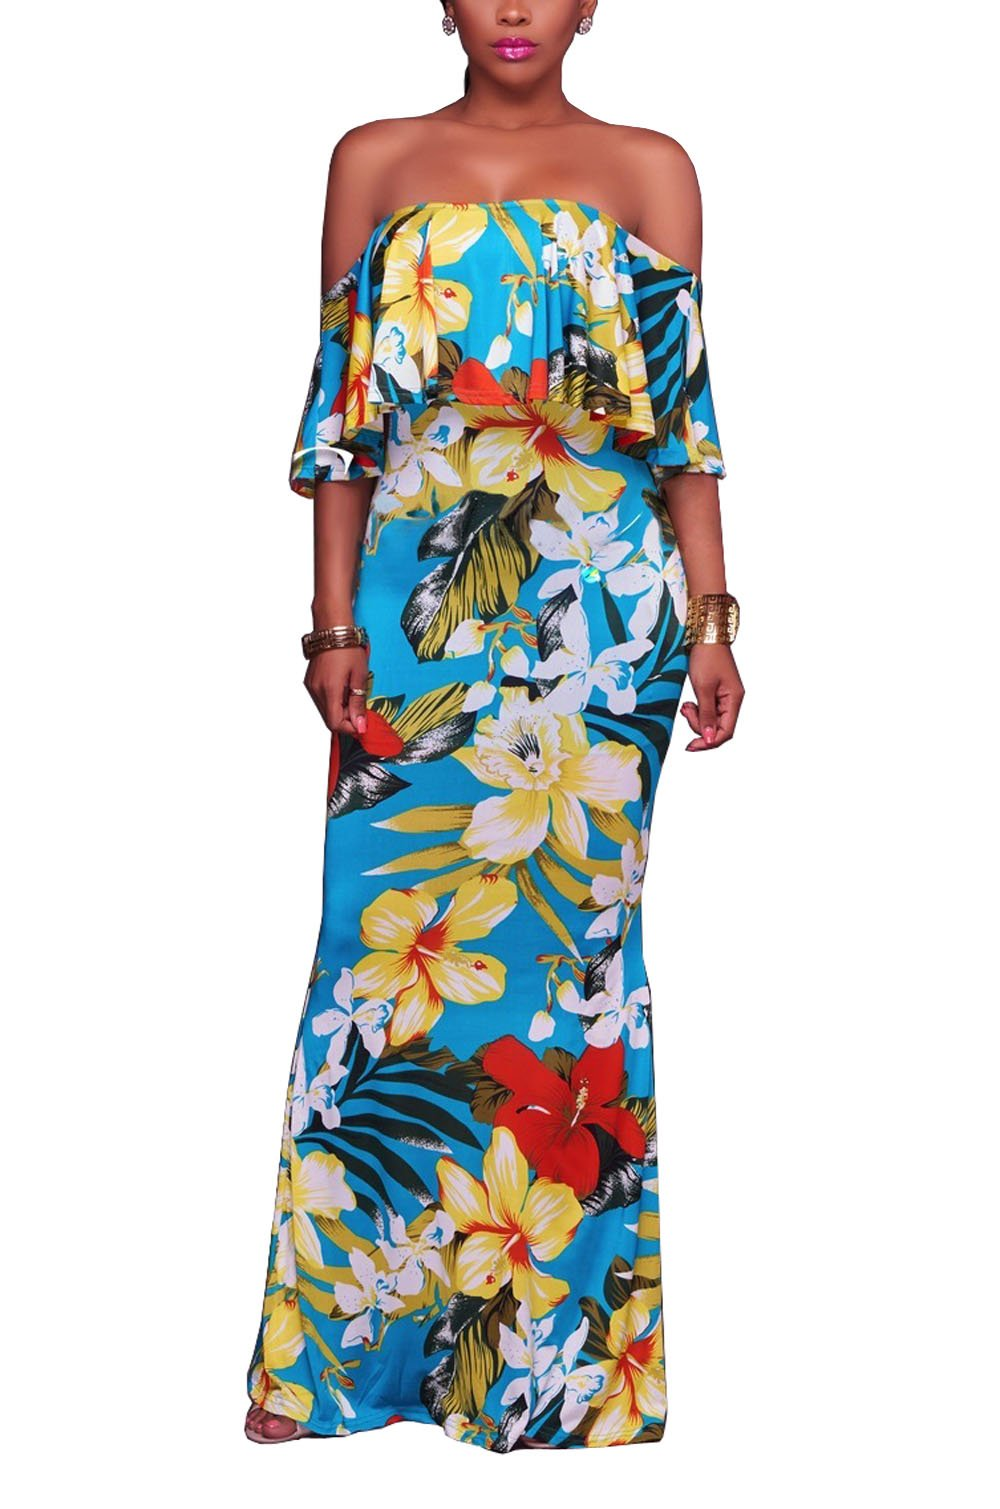 Suimiki Vintage Ruffle Plain Floral Printed Off Shoulder Bodycon Long Party Maxi Dress Blue Style-2 Large